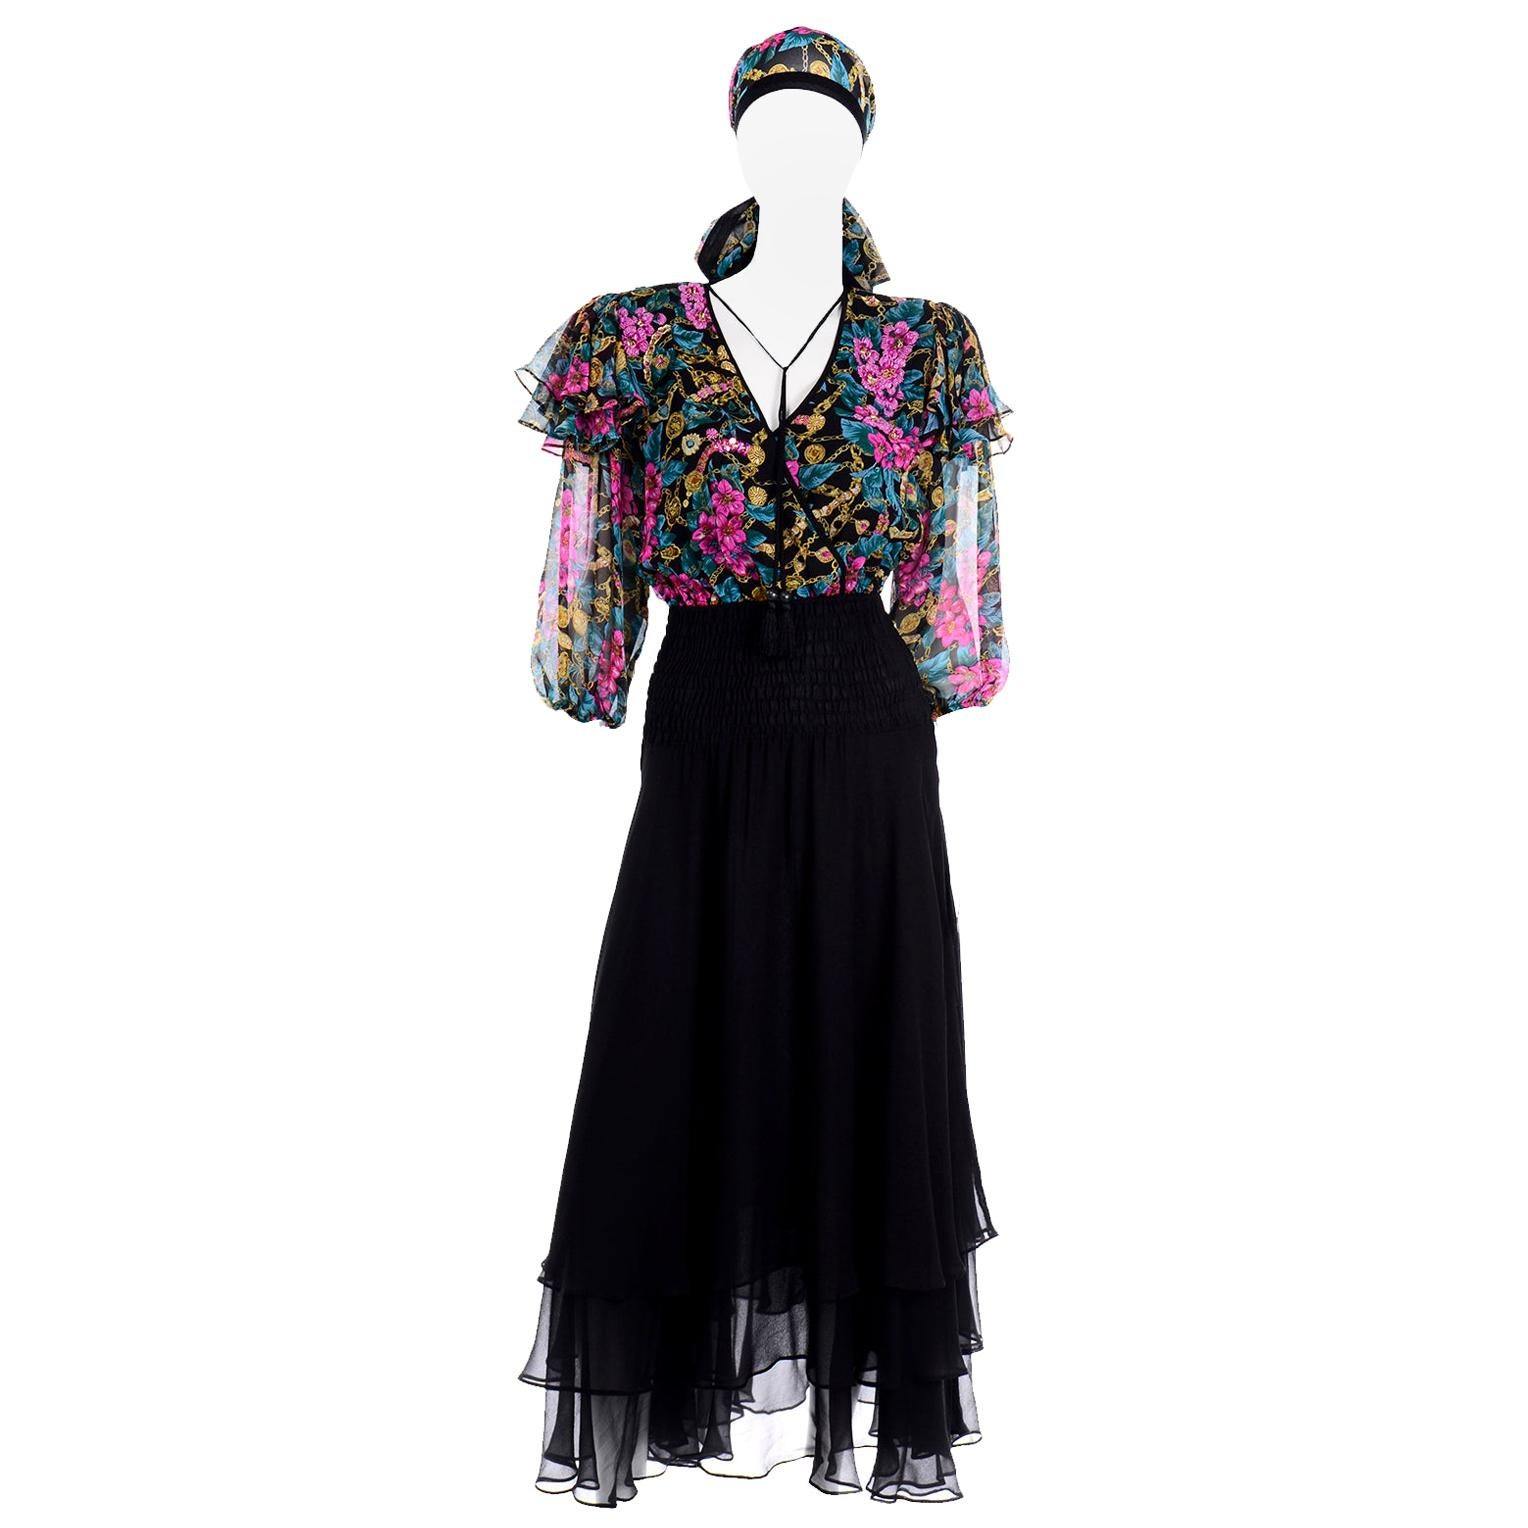 Diane Freis Silk Limited Edition Multi Colored Vintage Beaded Dress & Scarf